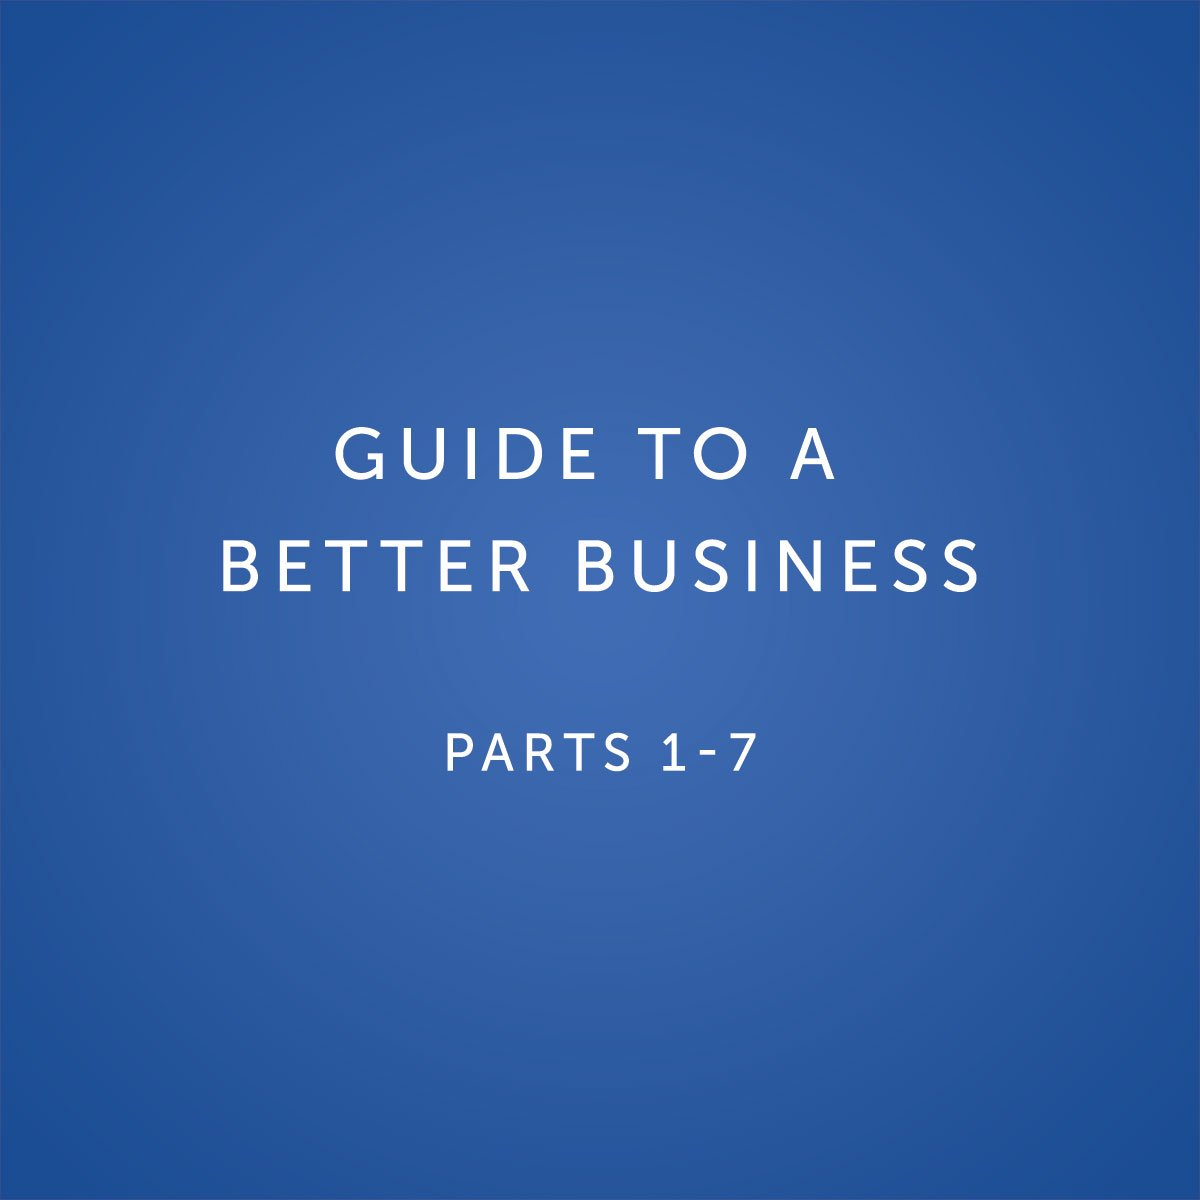 Guide to a better business